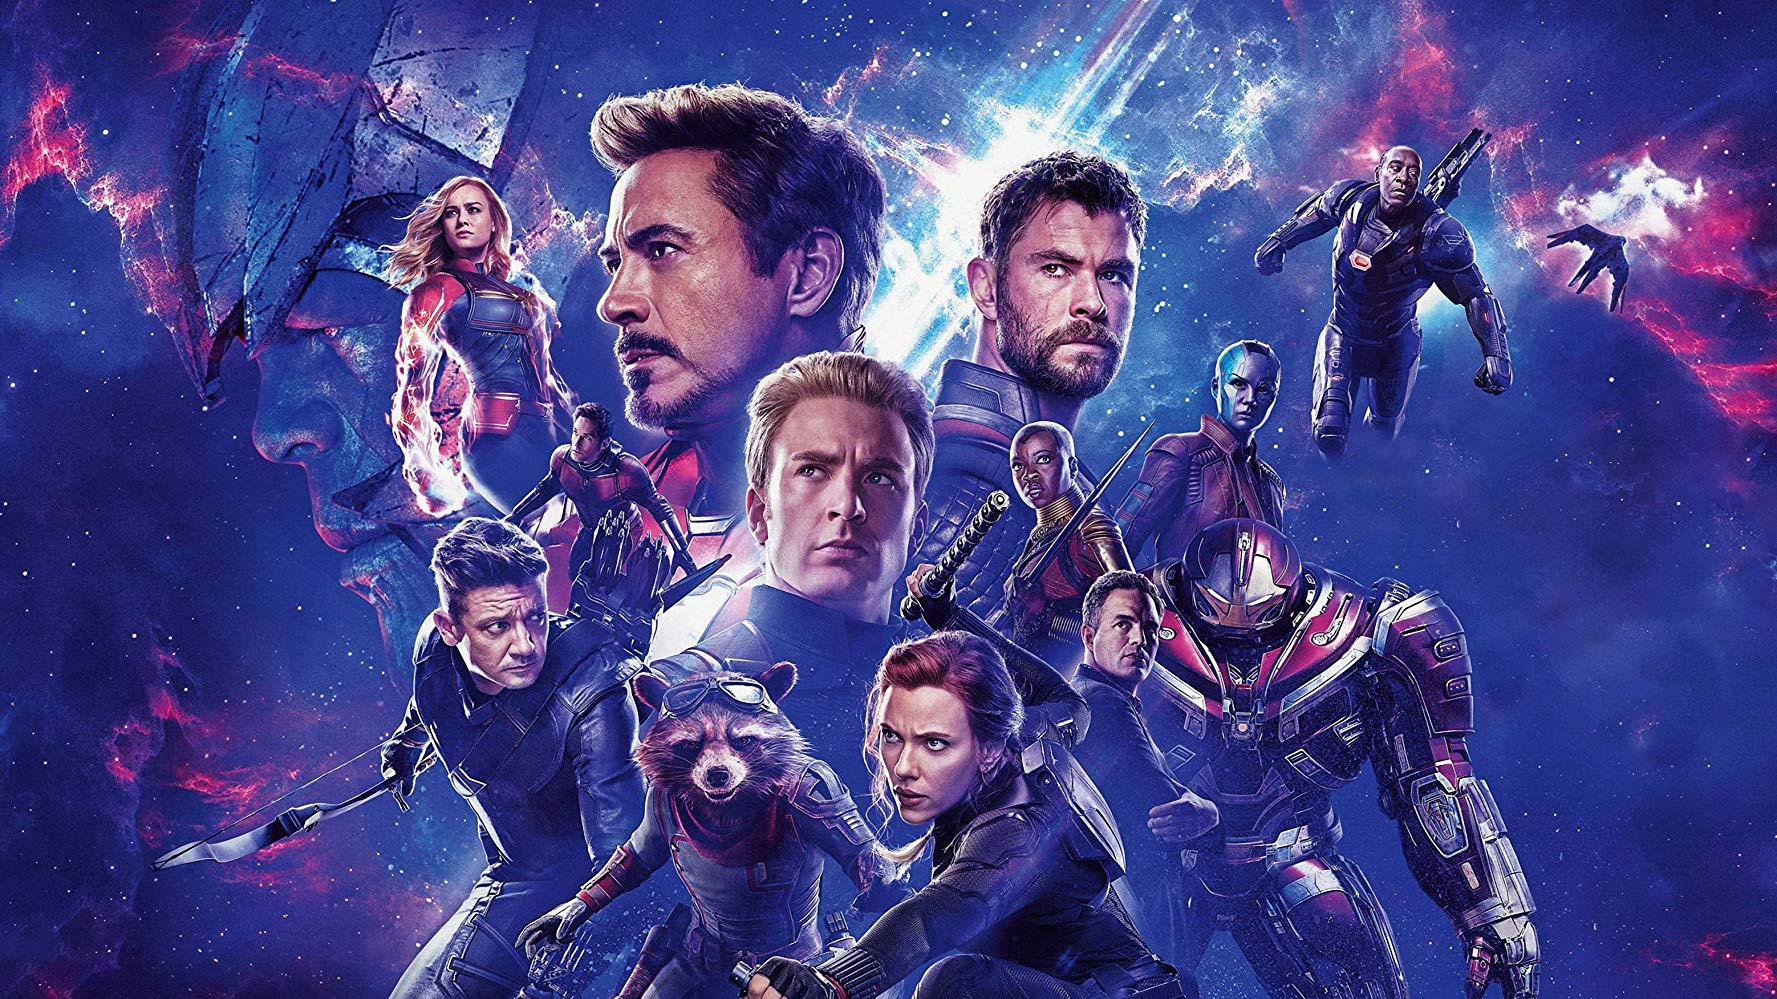 Social Media Spoilers Won't Ruin 'Avengers' (or Any Other Movie)